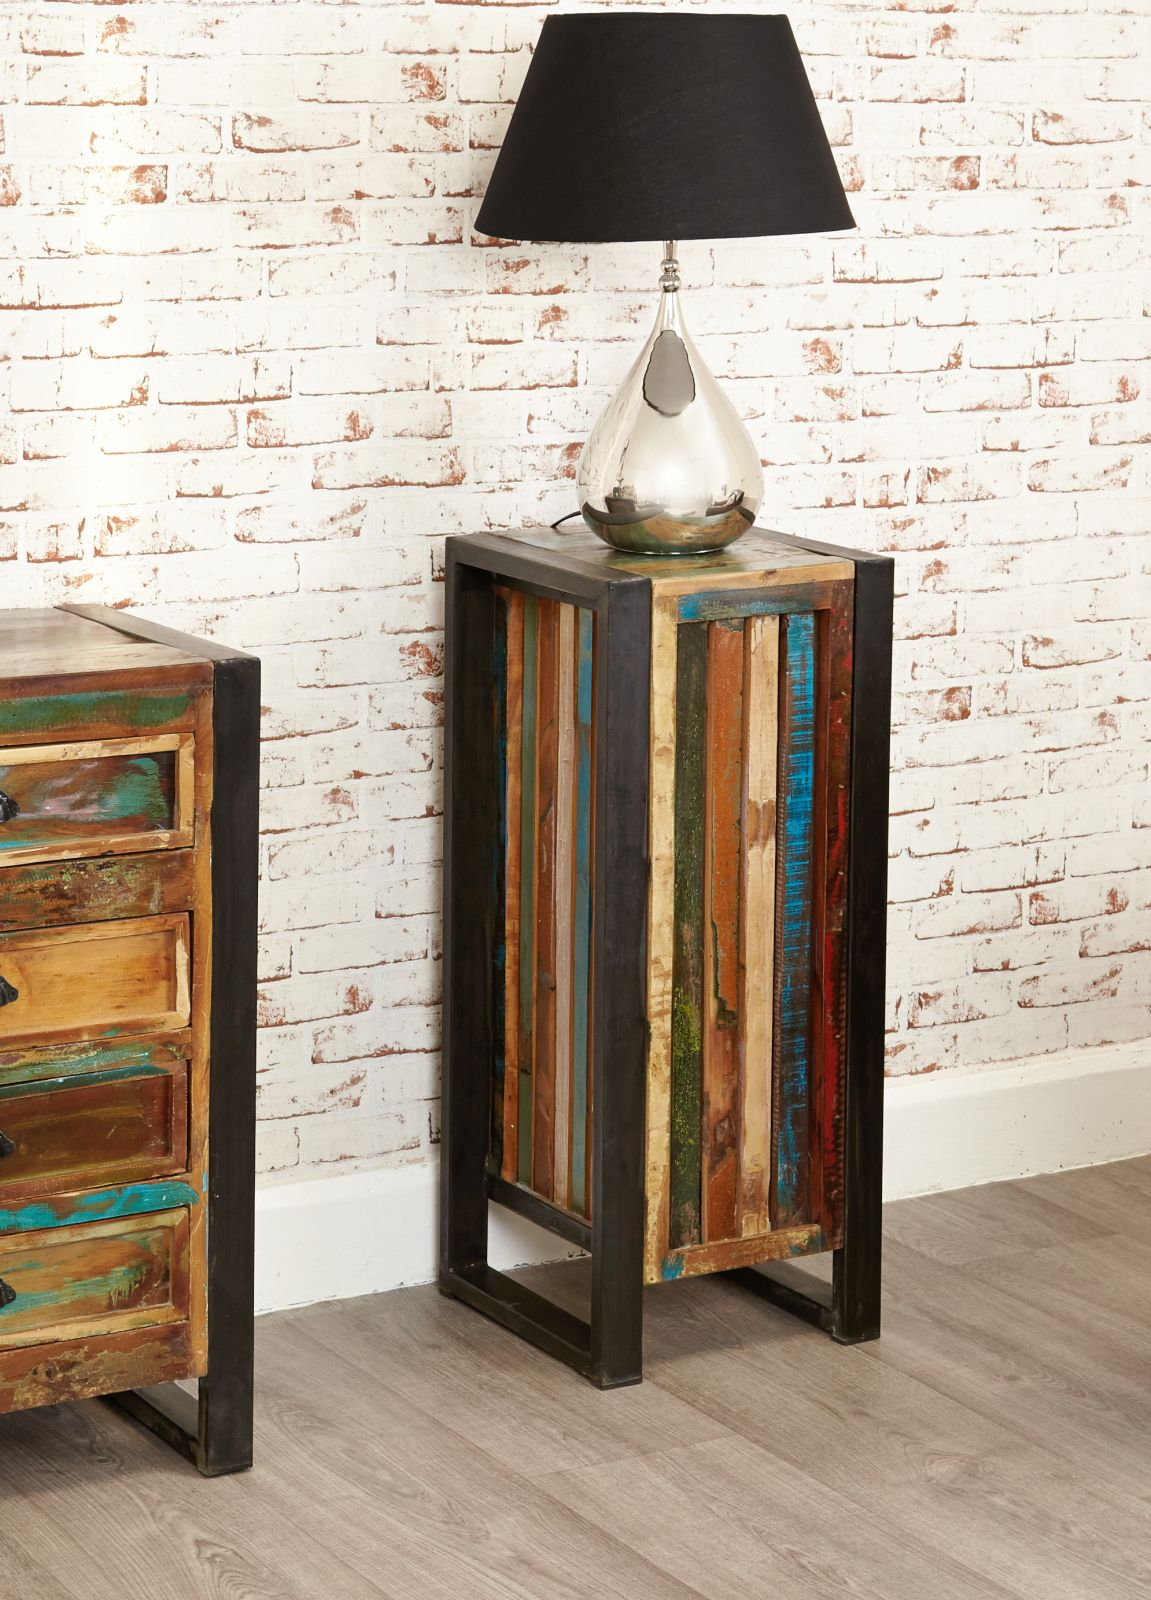 agra reclaimed wood furniture tall plant stand lamp side table ebay. Black Bedroom Furniture Sets. Home Design Ideas